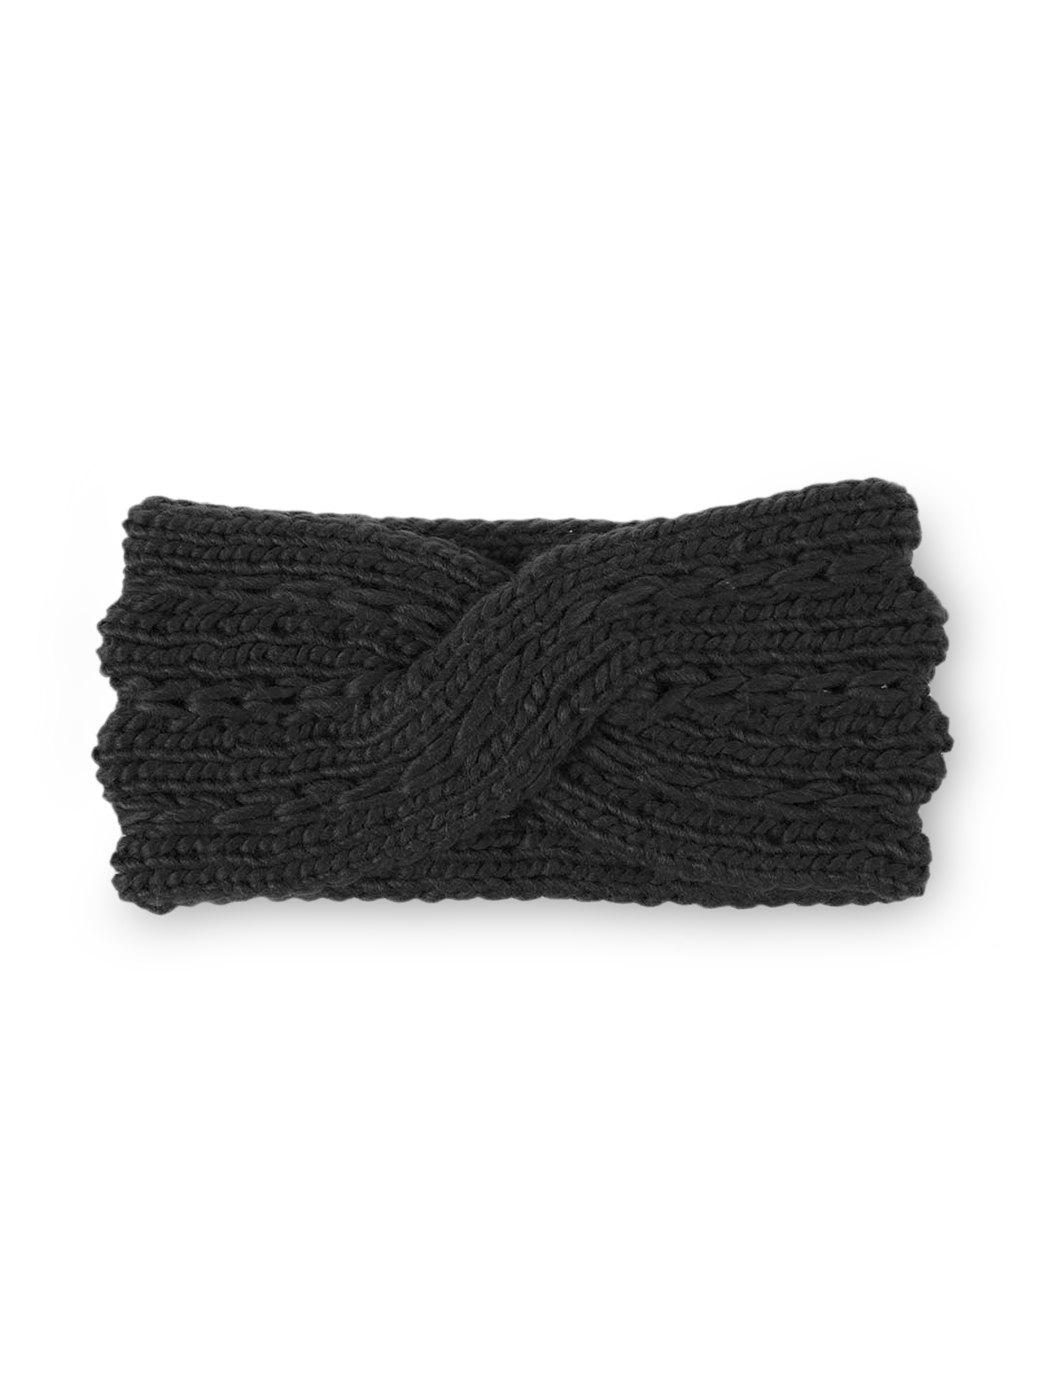 Store Cross Bowknot Knitted Winter Hair Band